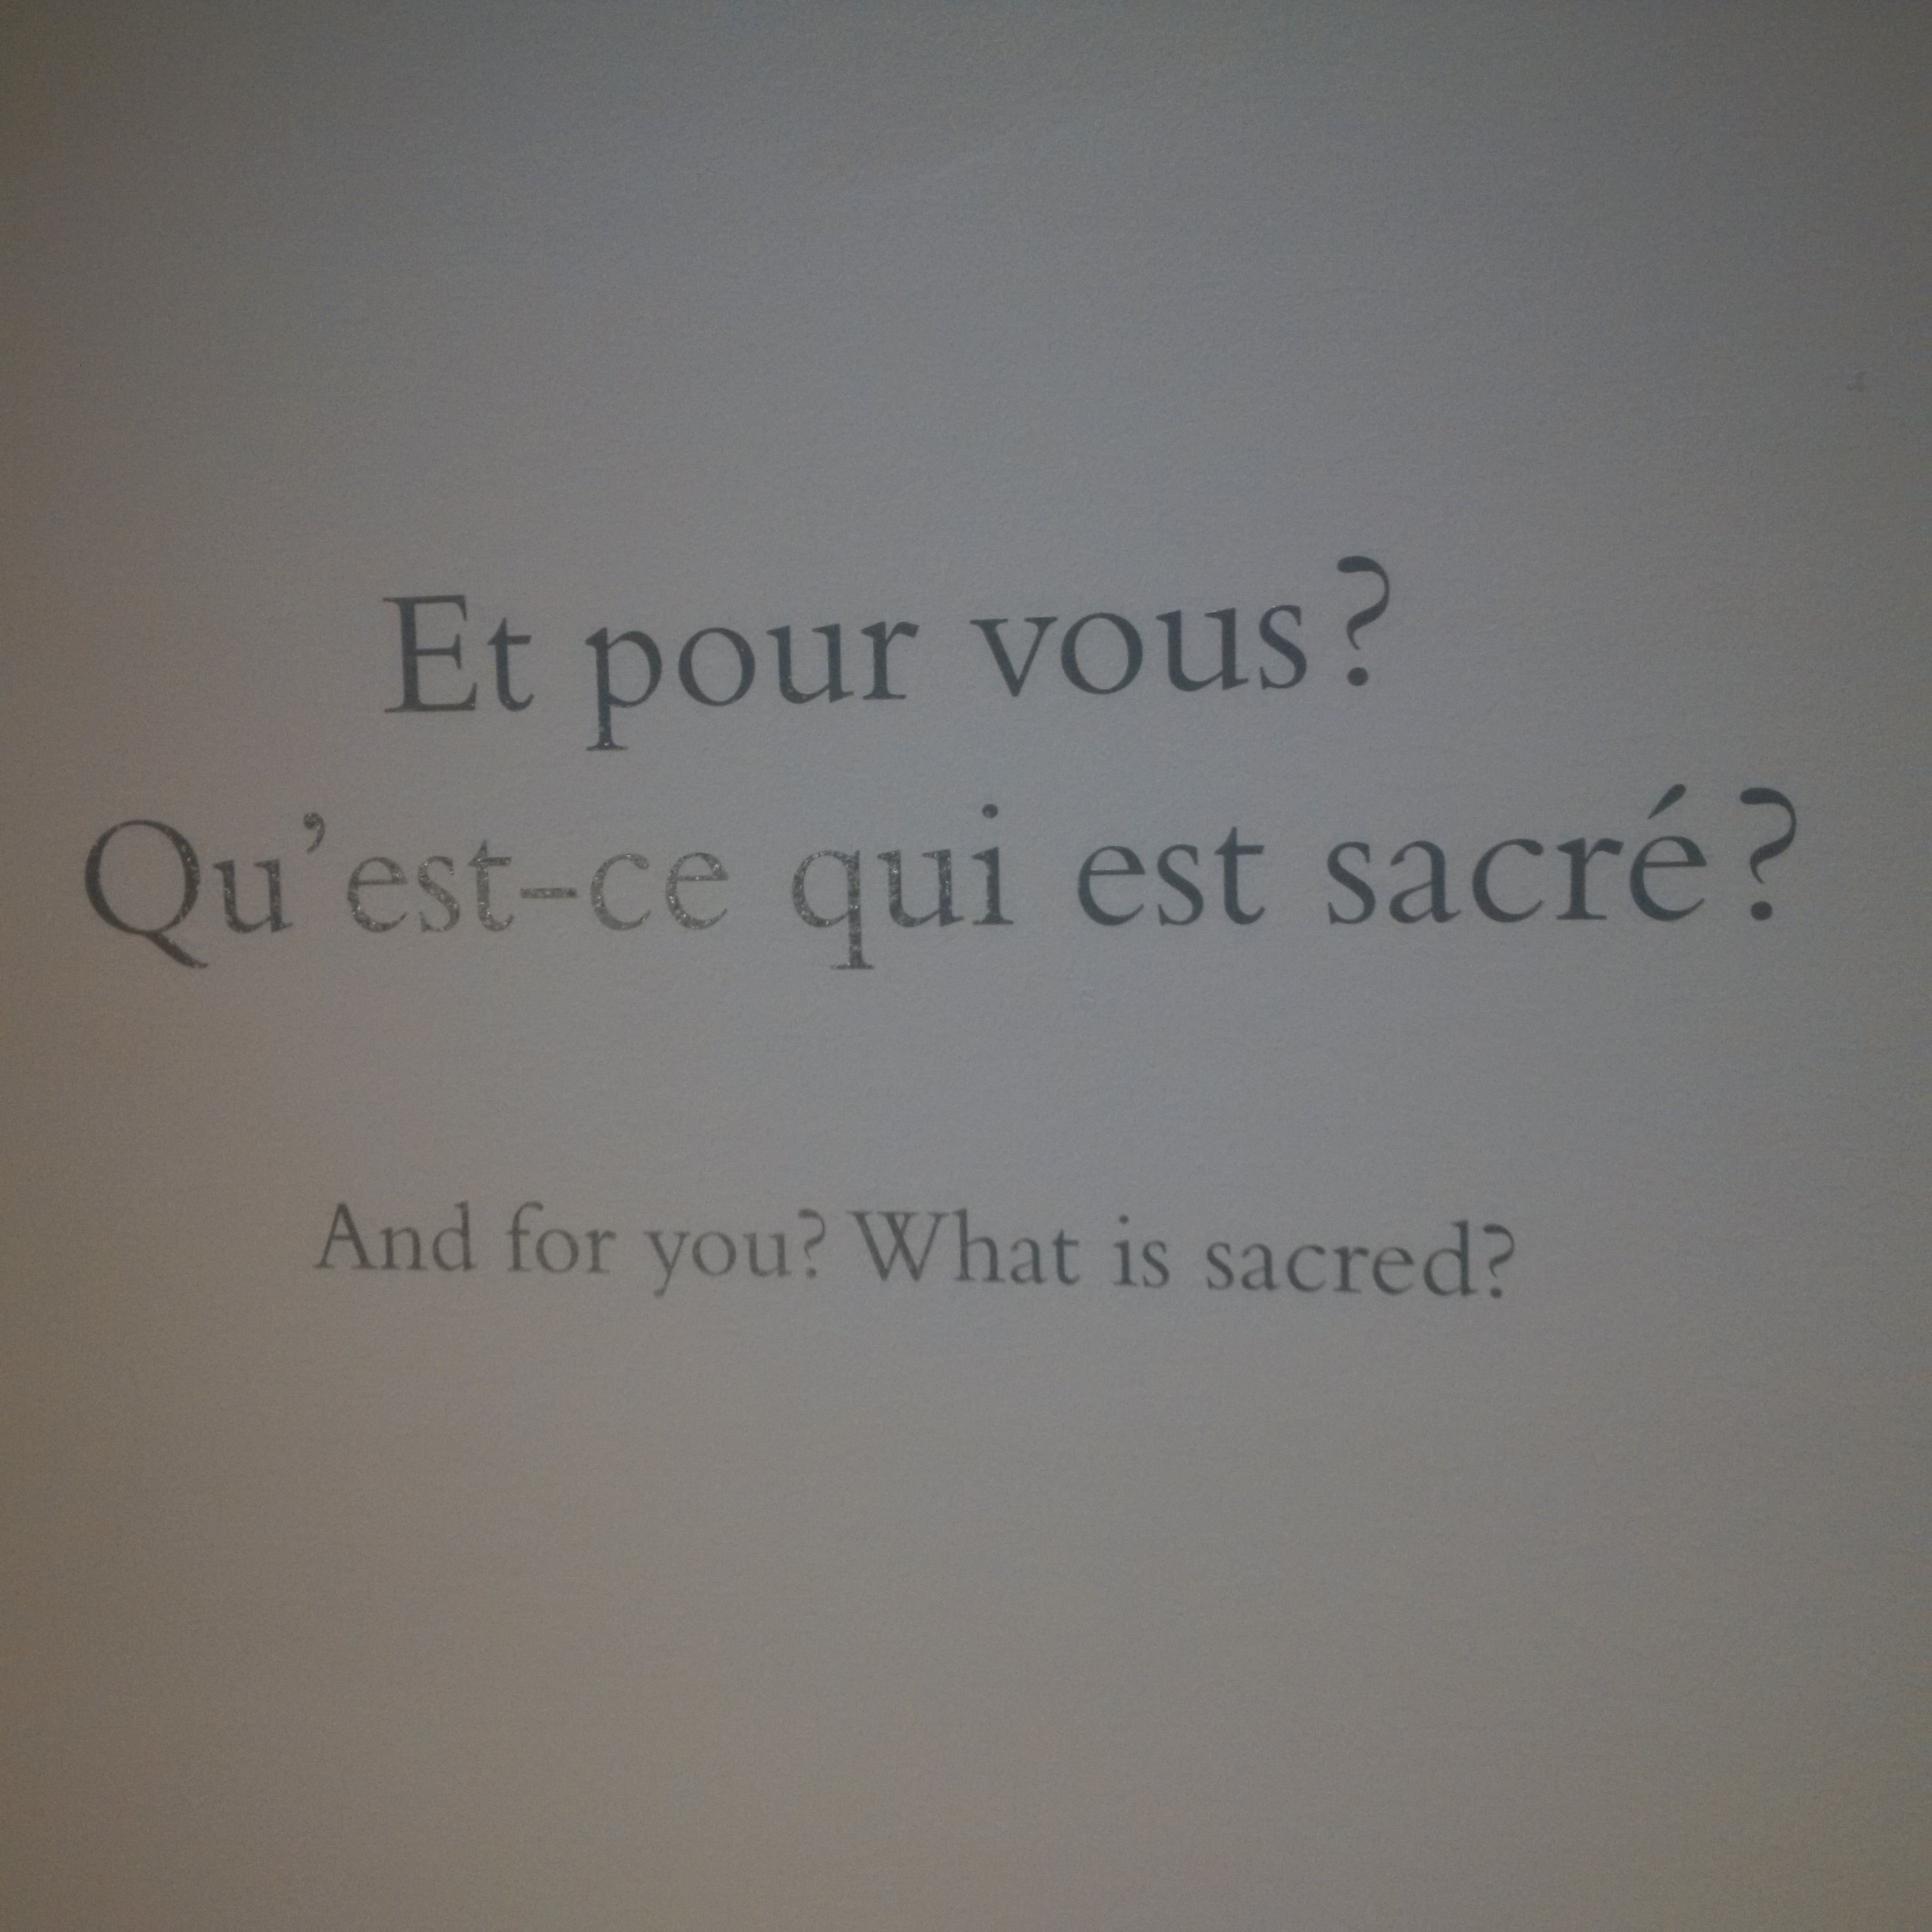 And for you? What is sacred?